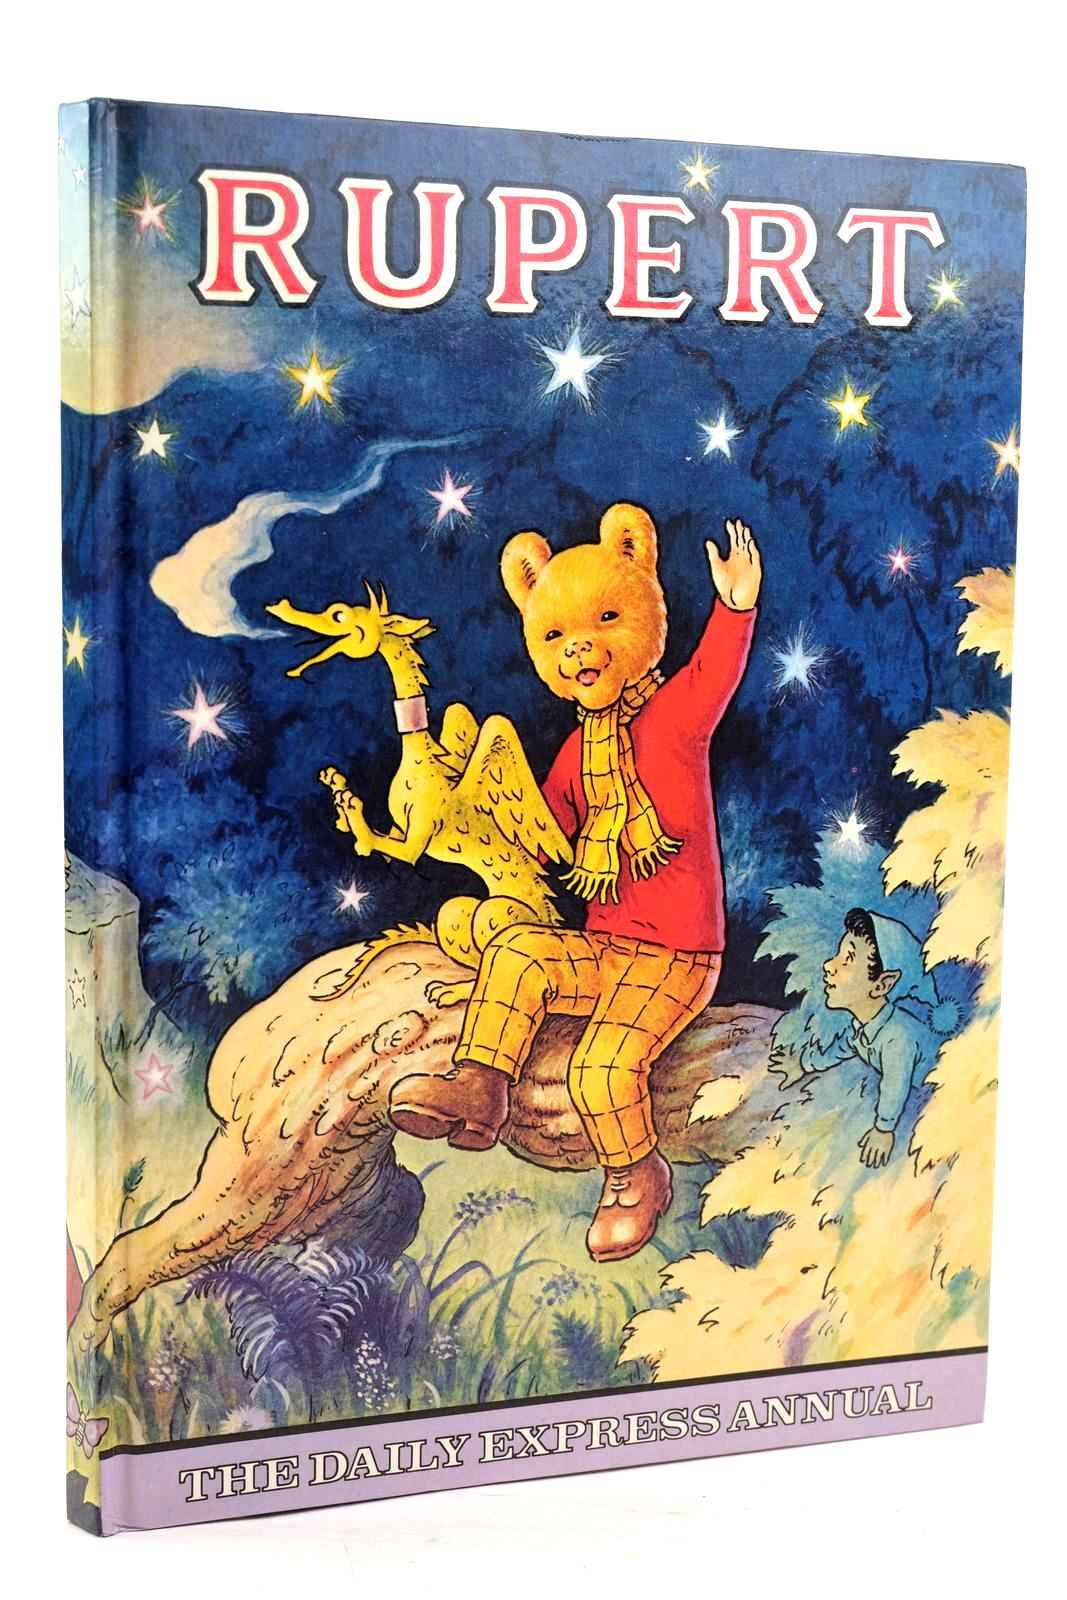 Photo of RUPERT ANNUAL 1979 illustrated by Harrold, John published by Daily Express (STOCK CODE: 1319526)  for sale by Stella & Rose's Books